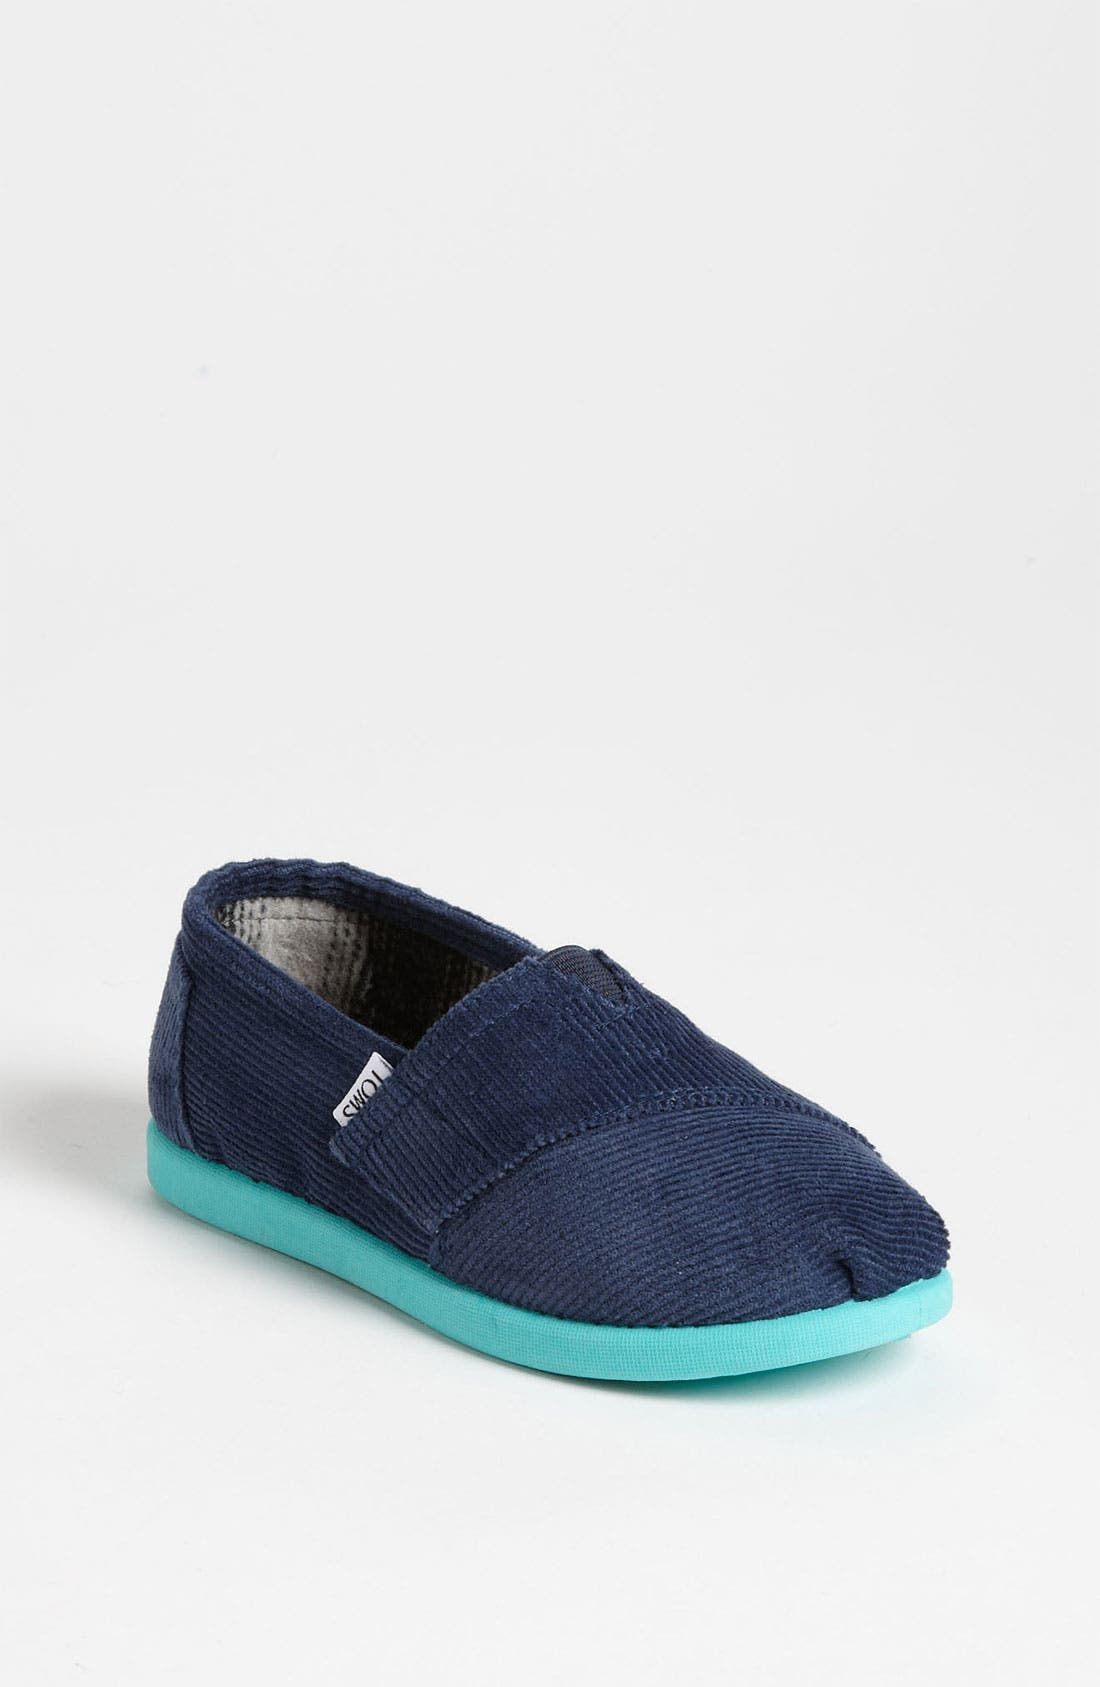 Alternate Image 1 Selected - TOMS 'Classic - Tiny' Corduroy Slip-On (Baby, Walker & Toddler)